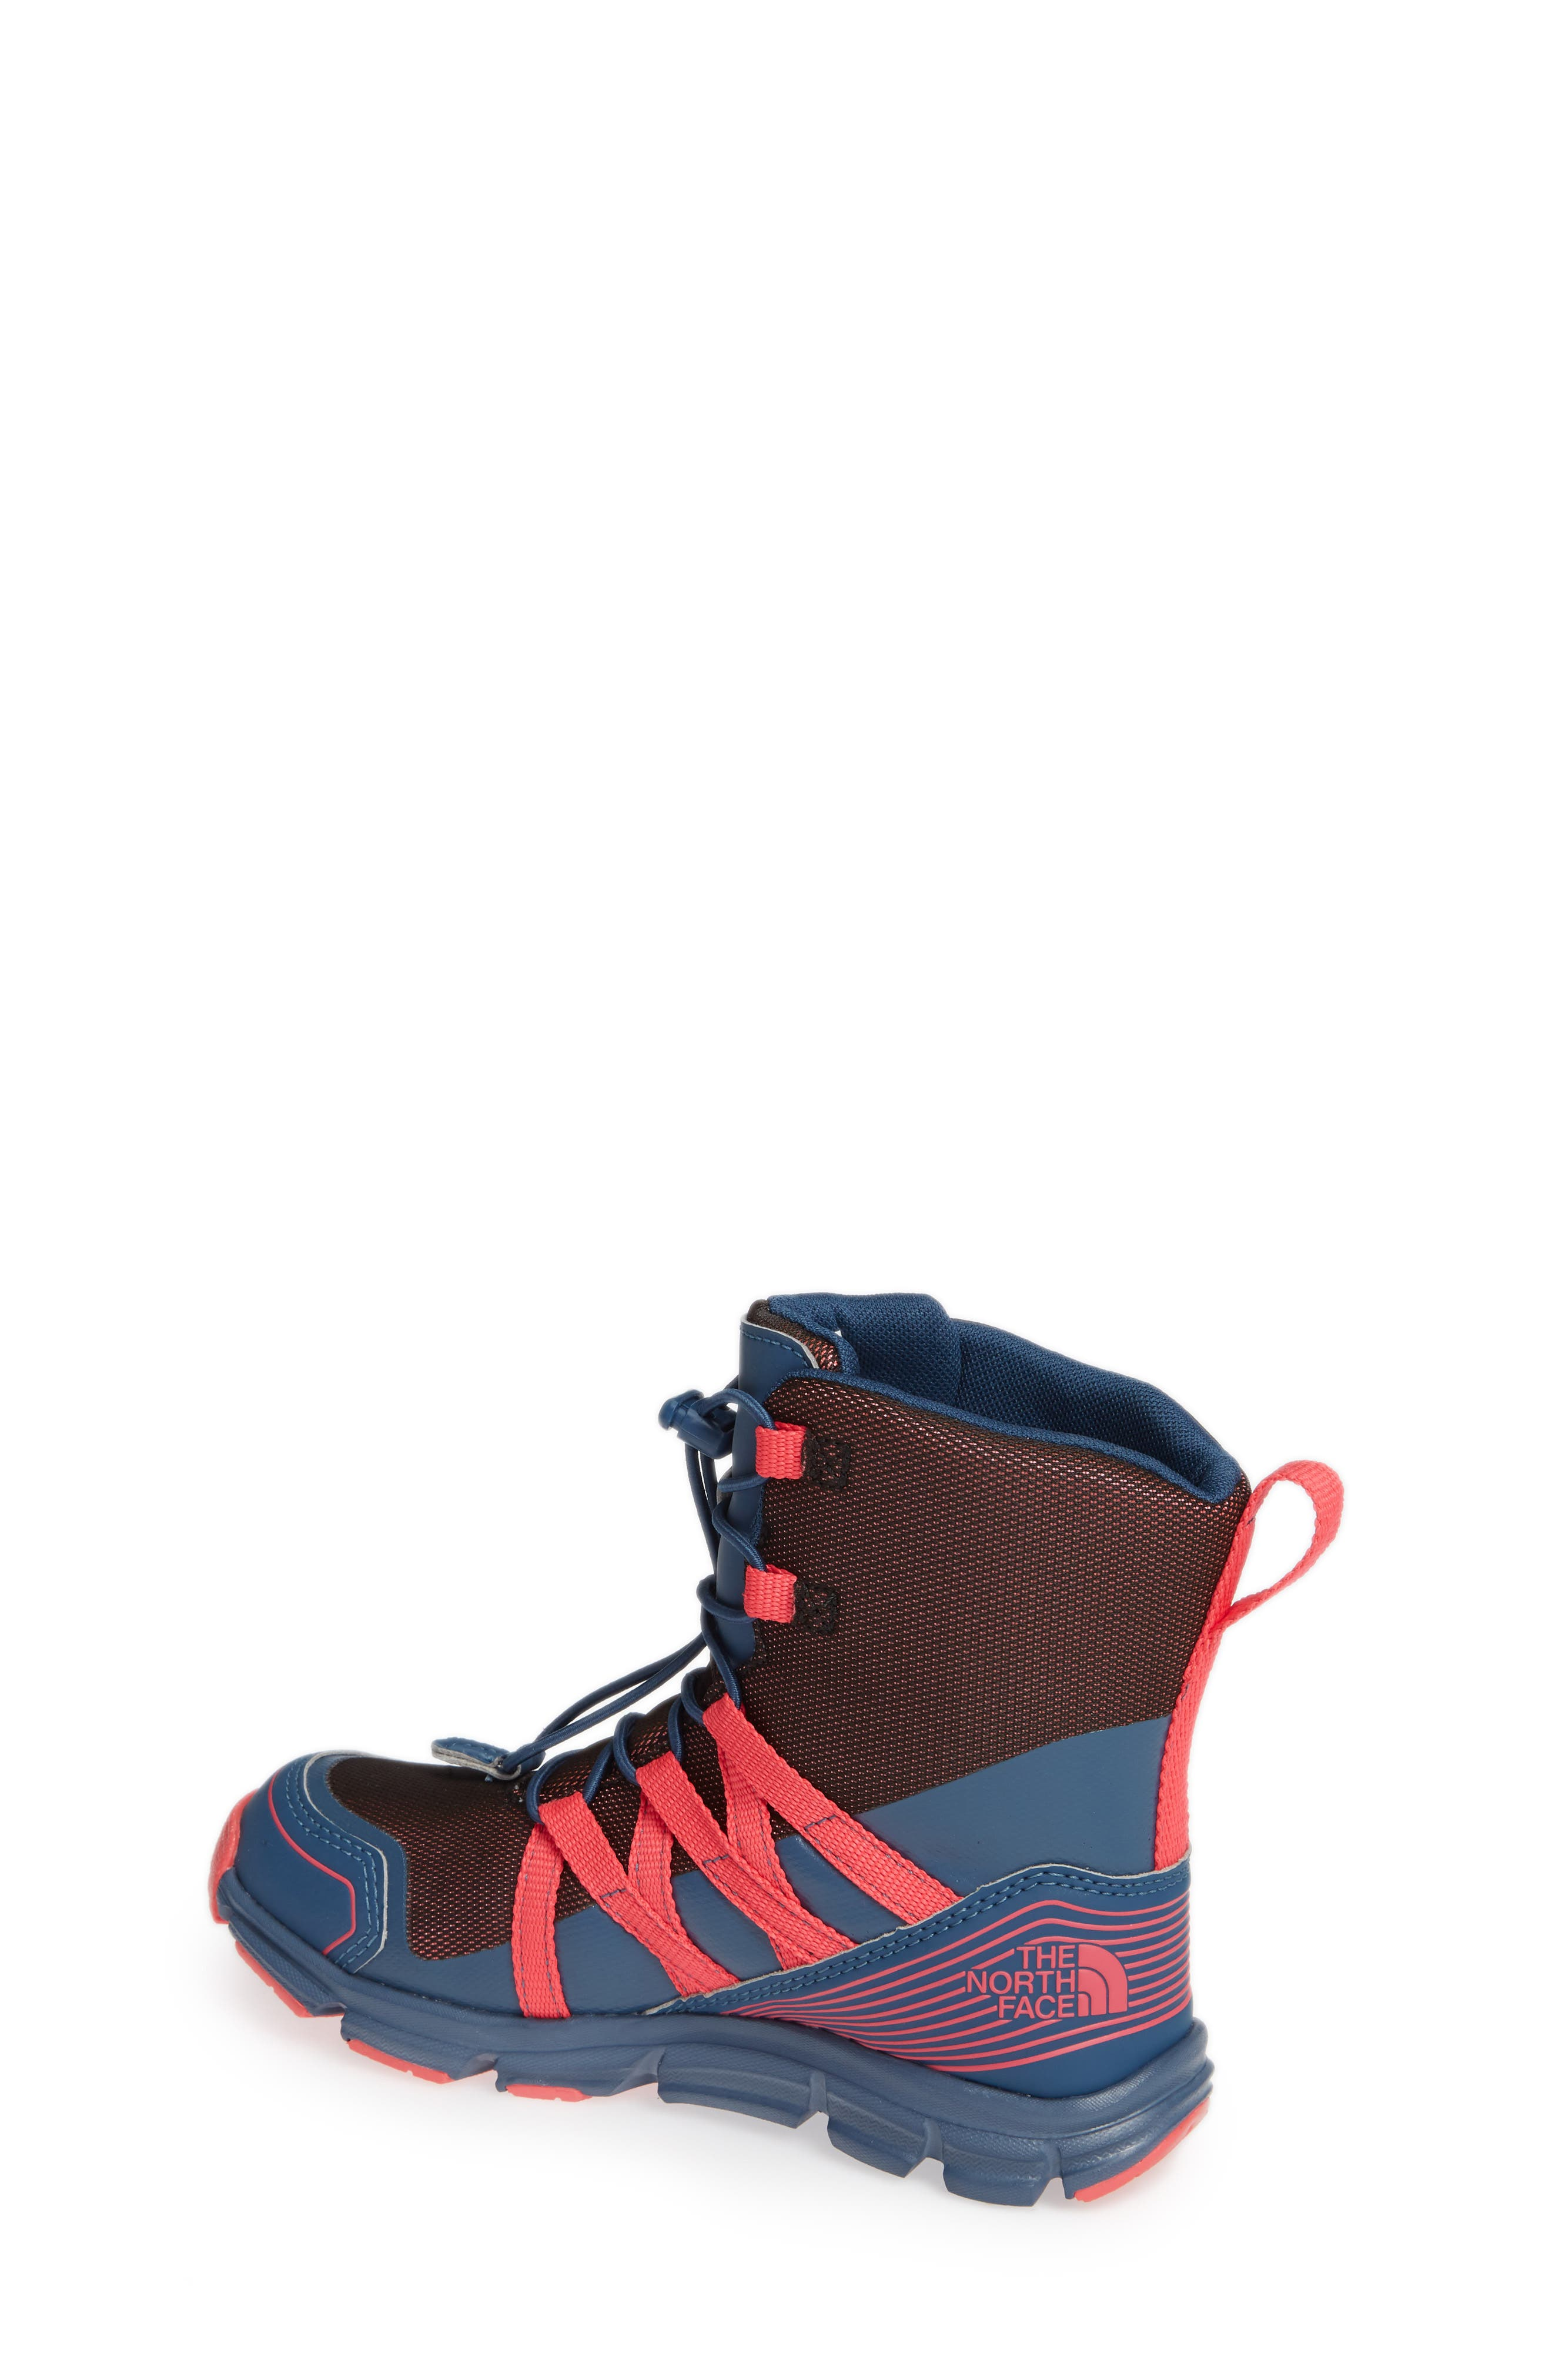 Junior Winter Sneaker Waterproof Insulated Boot,                             Alternate thumbnail 2, color,                             BLUE WING TEAL/ ATOMIC PINK